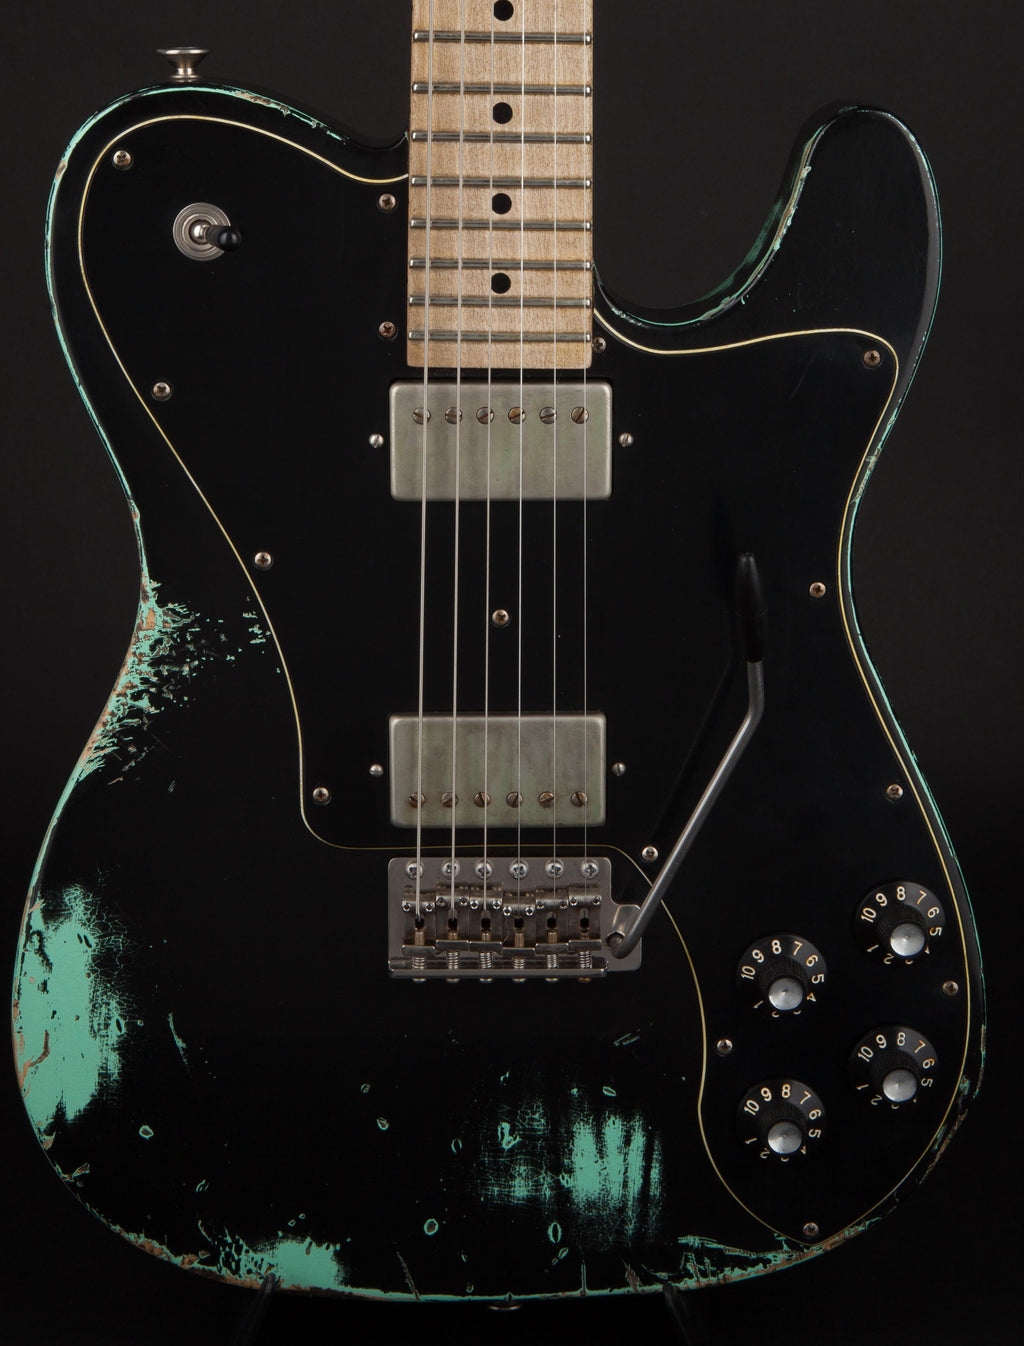 Luxxtone Nashville Black over Sea Foam Green #0017